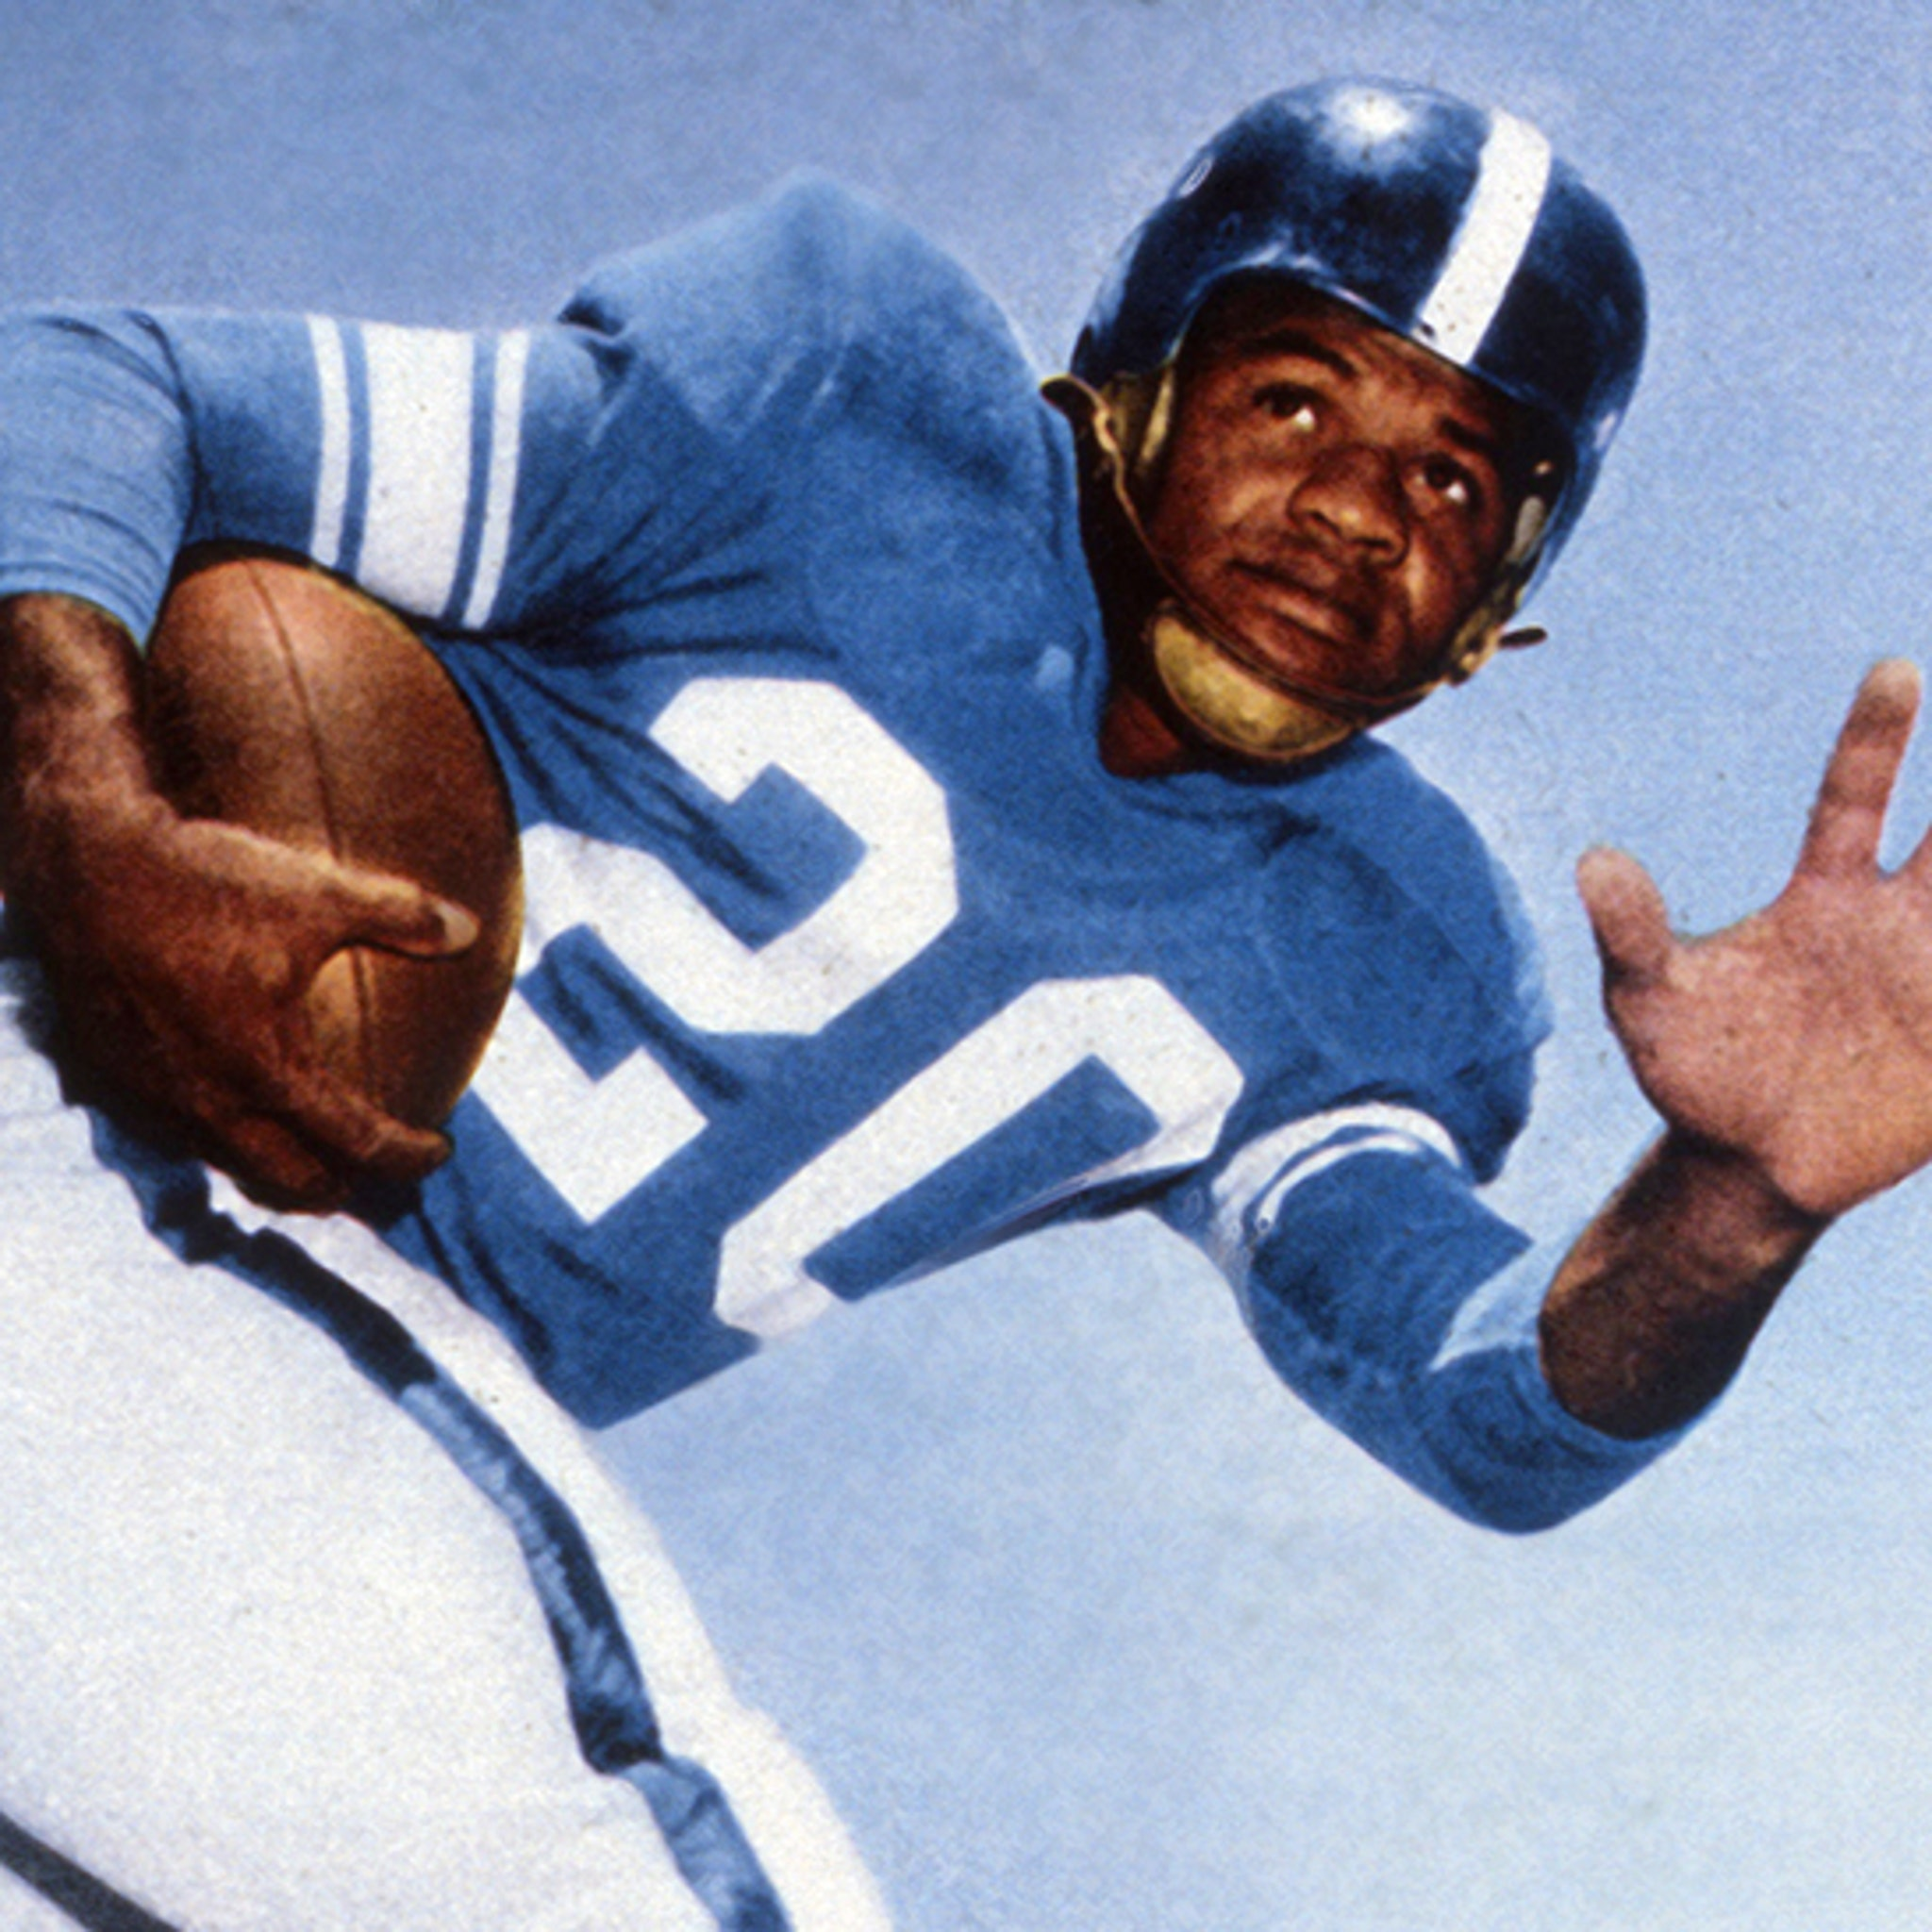 George Taliaferro Dies At 91, First Black Man Drafted By NFL Team